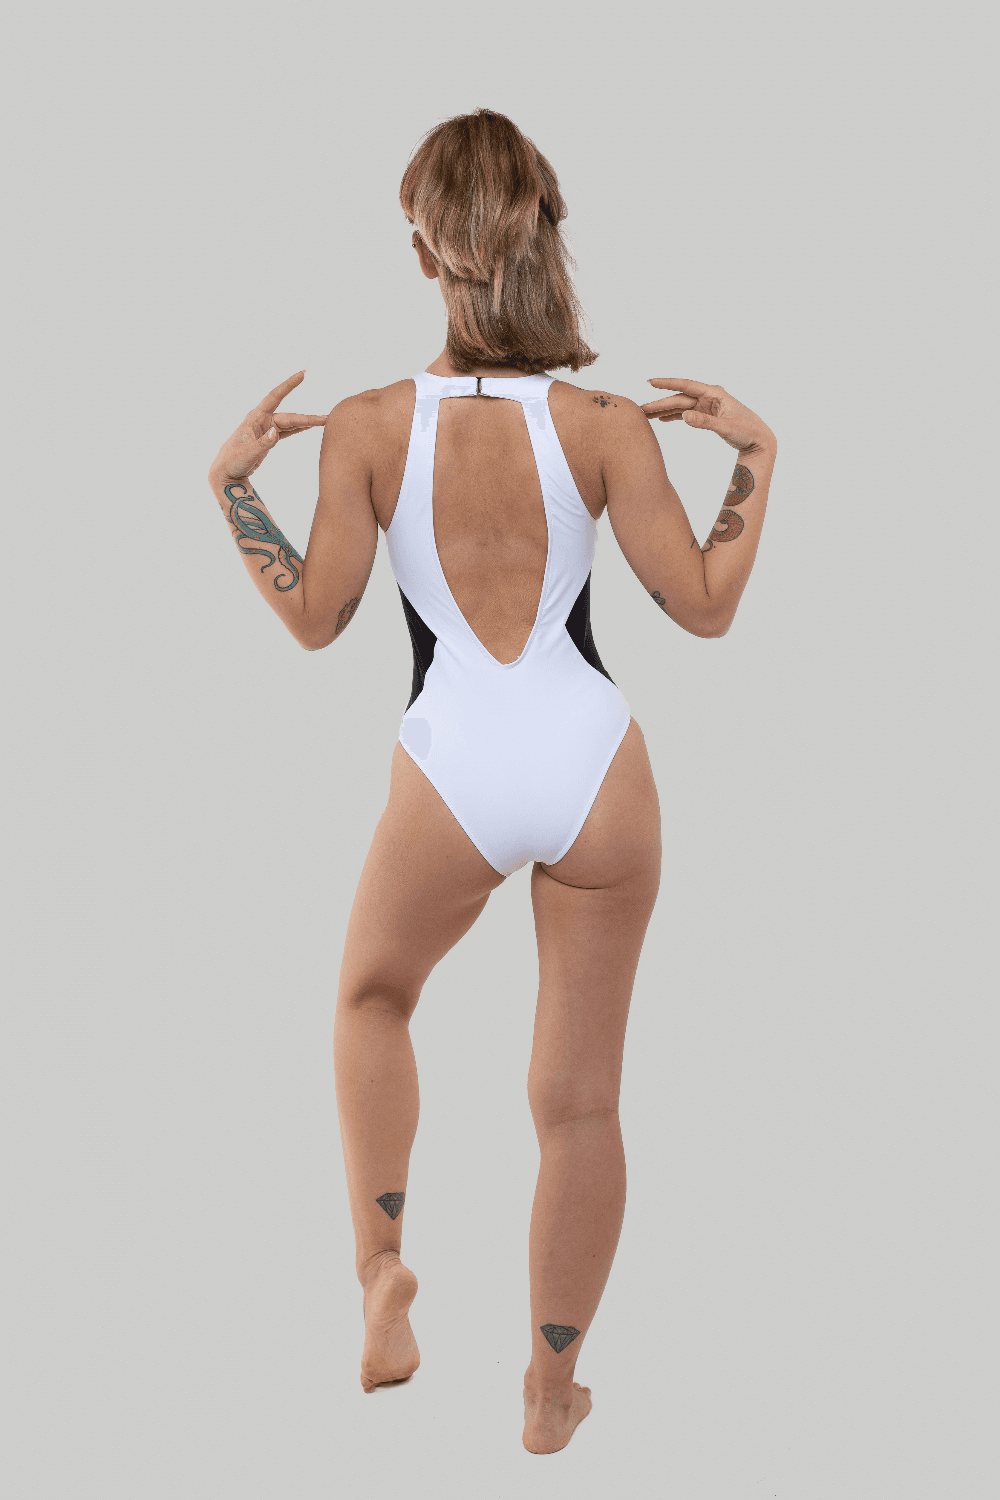 Creatures of XIX XX Bodysuit pole dance wear white back view